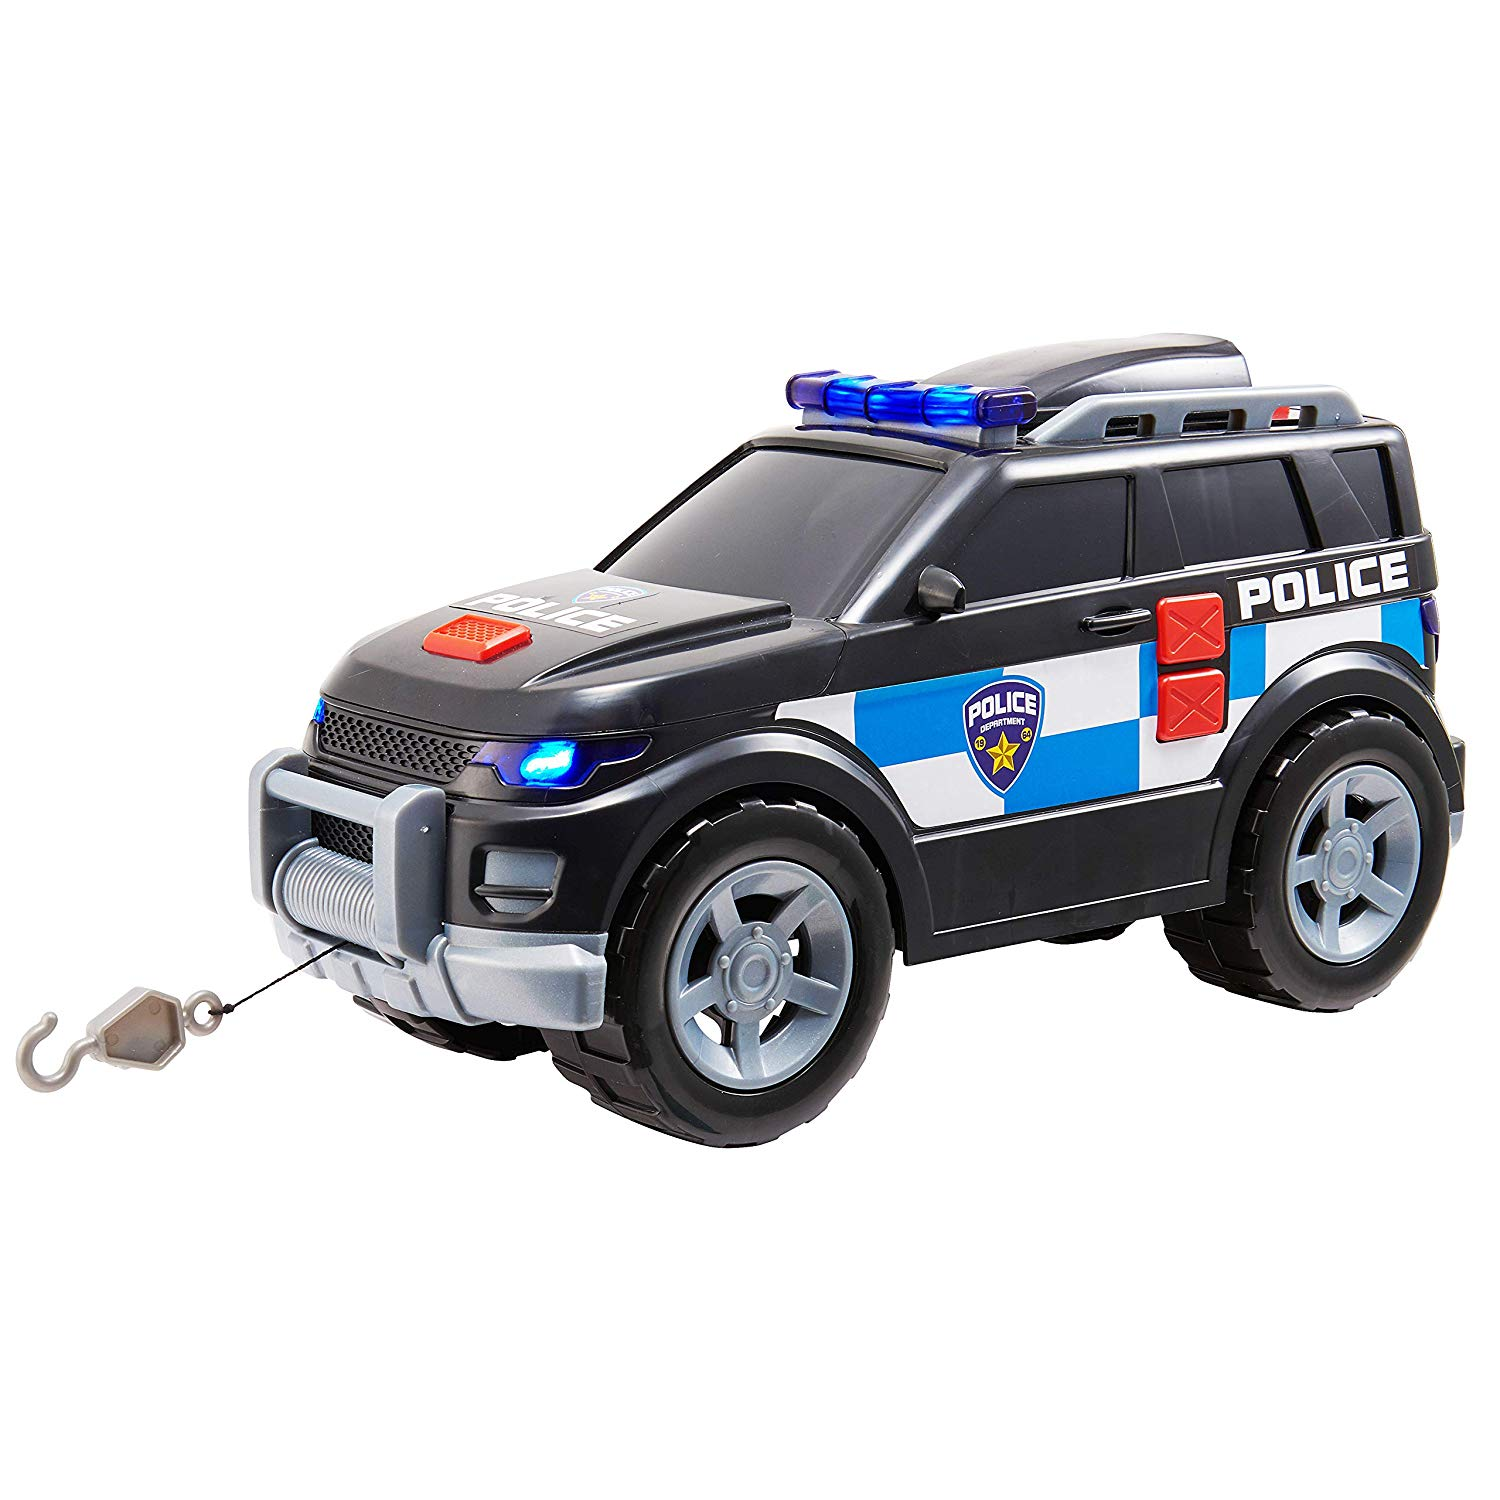 Teamsterz Large Light & Sound Police 4×4 | Kids Emergency Police Toy Vehicle Great For Children Aged 3+